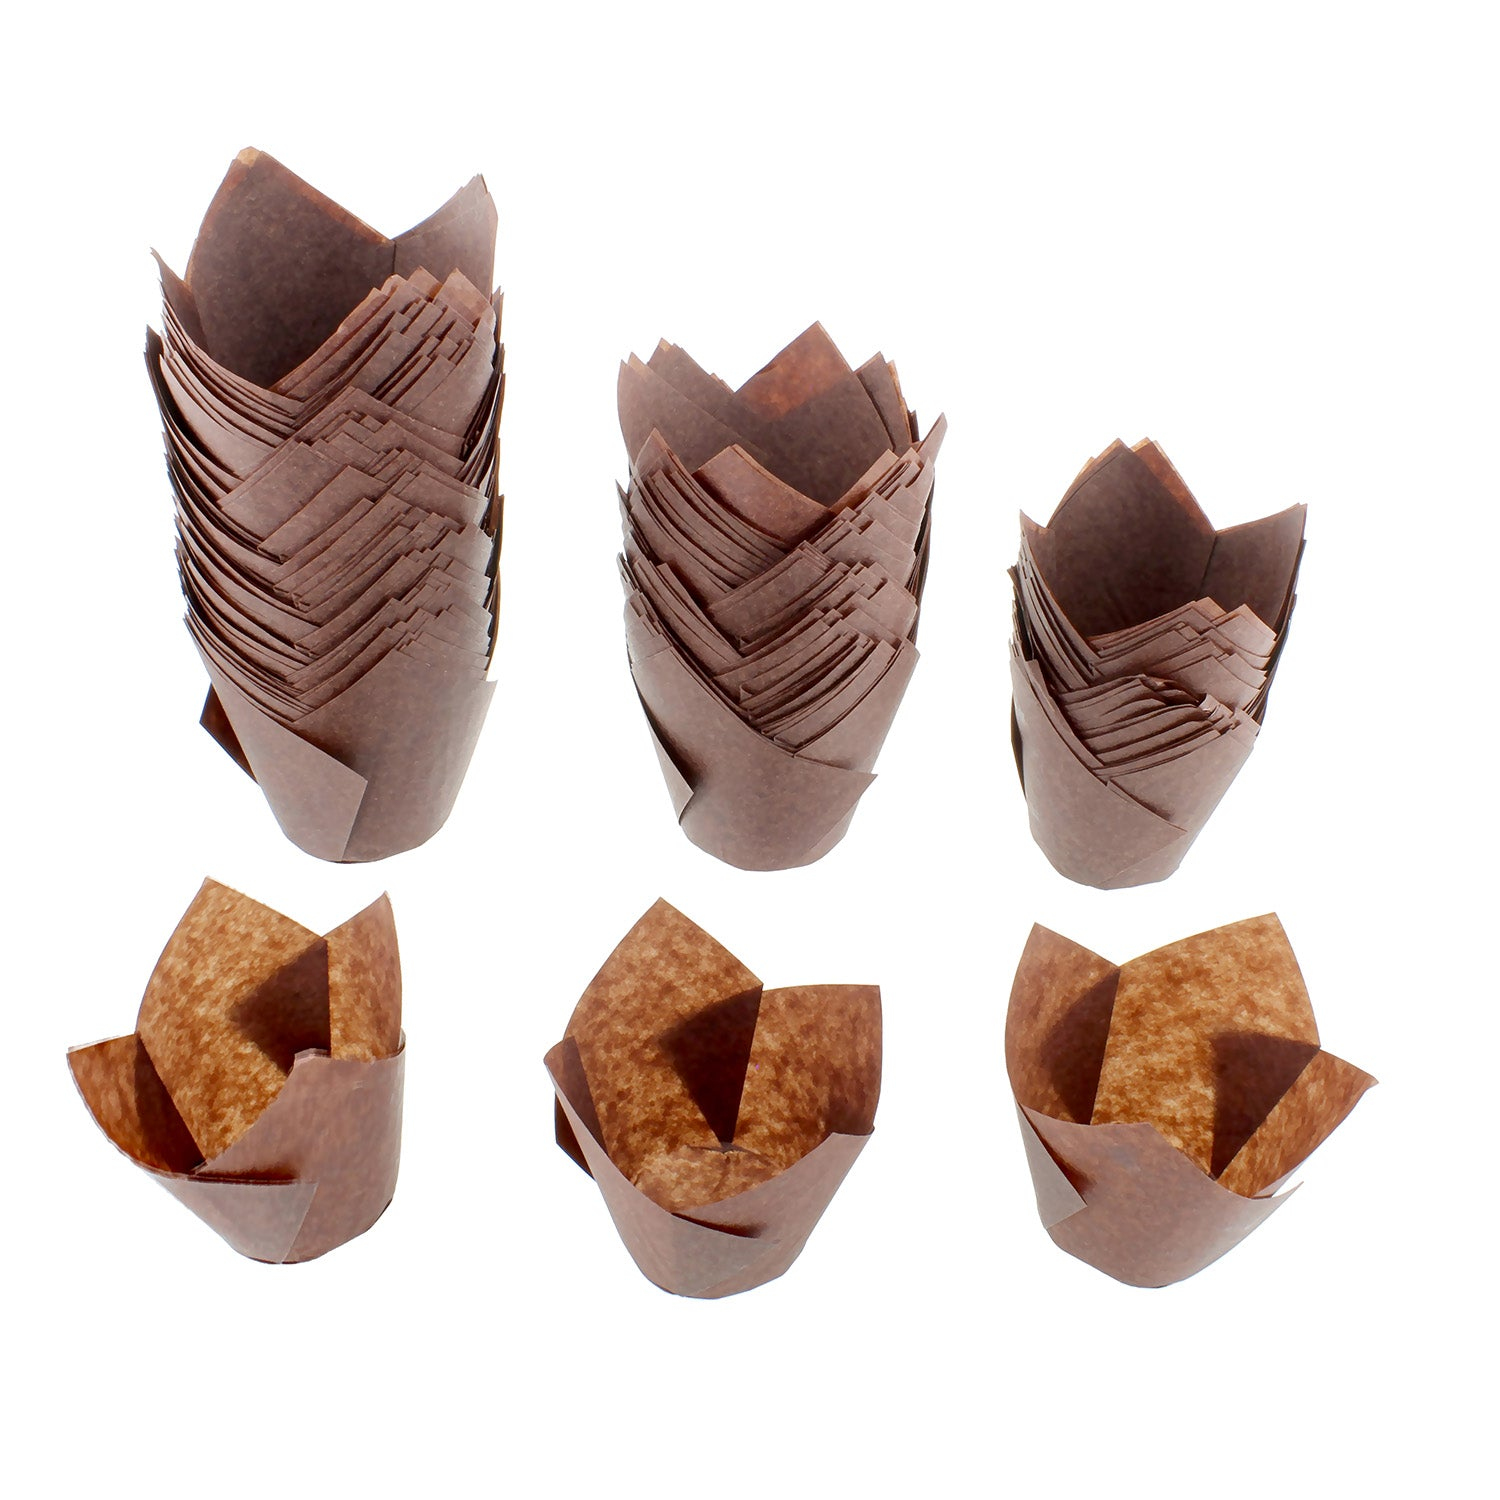 Muffin Brown Tulip Cases- Pack of 1000 - cake boxes, cupcake boxes, thecakeboxes